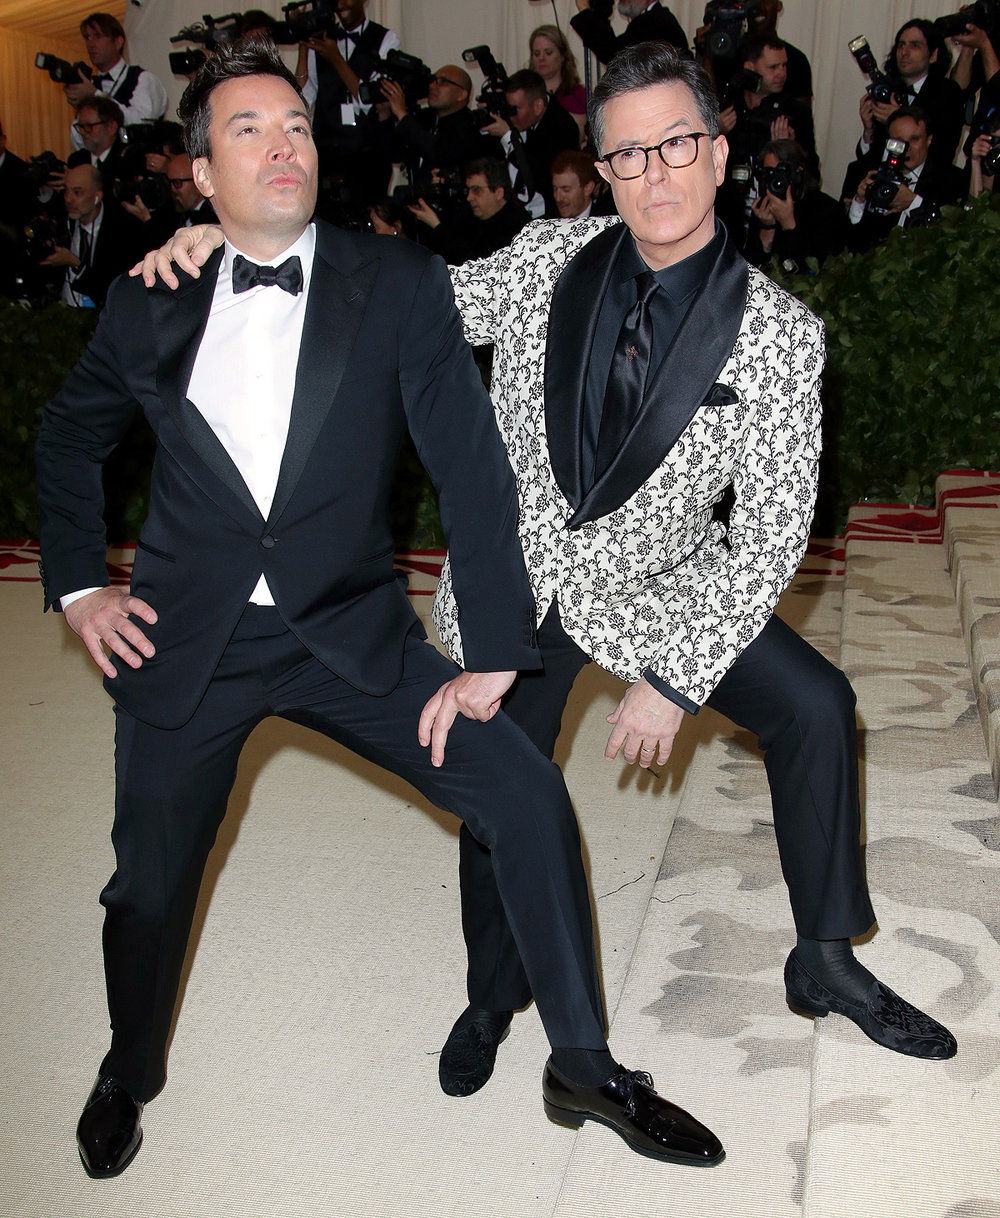 99. JIMMY FALLON & STEPHEN COLBERT